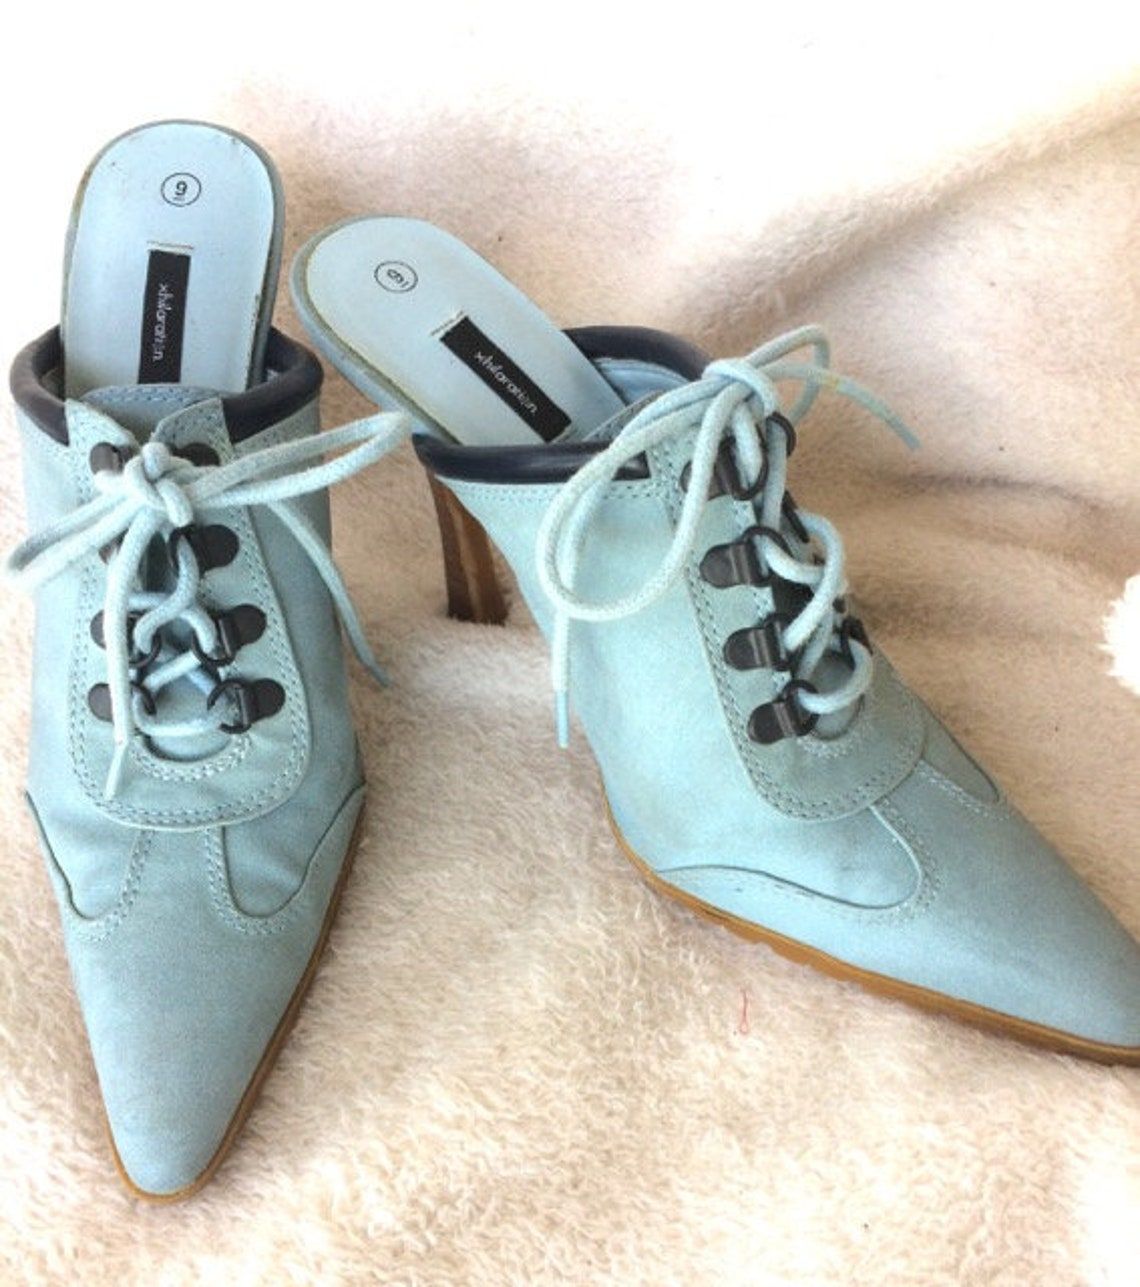 01a86fadcf3 Size 9 blue suede shoes high heels 5 vintage pointy toes